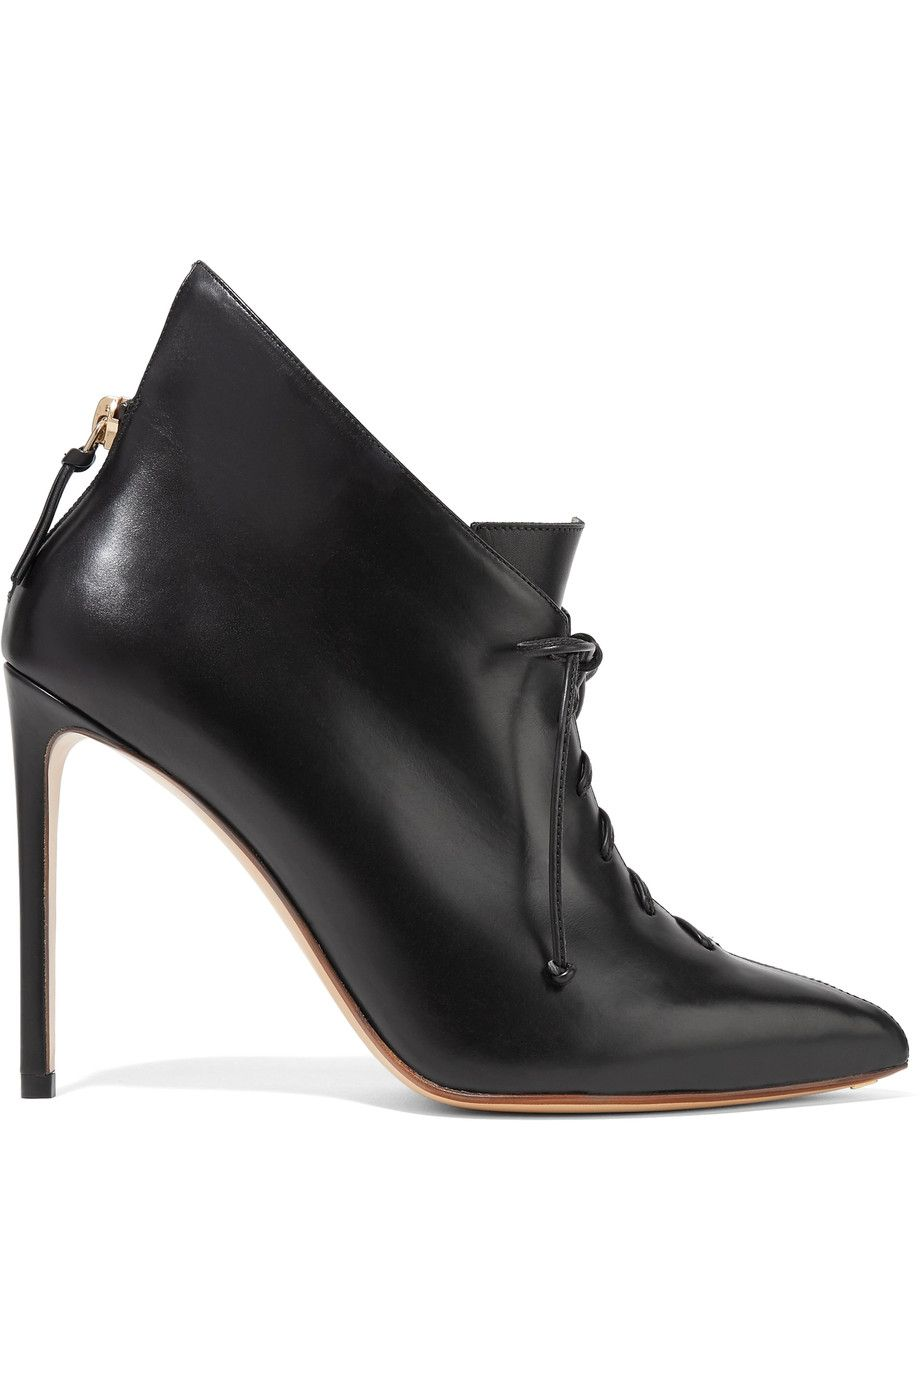 Francesco Russo Leather ankle boots ADzEP